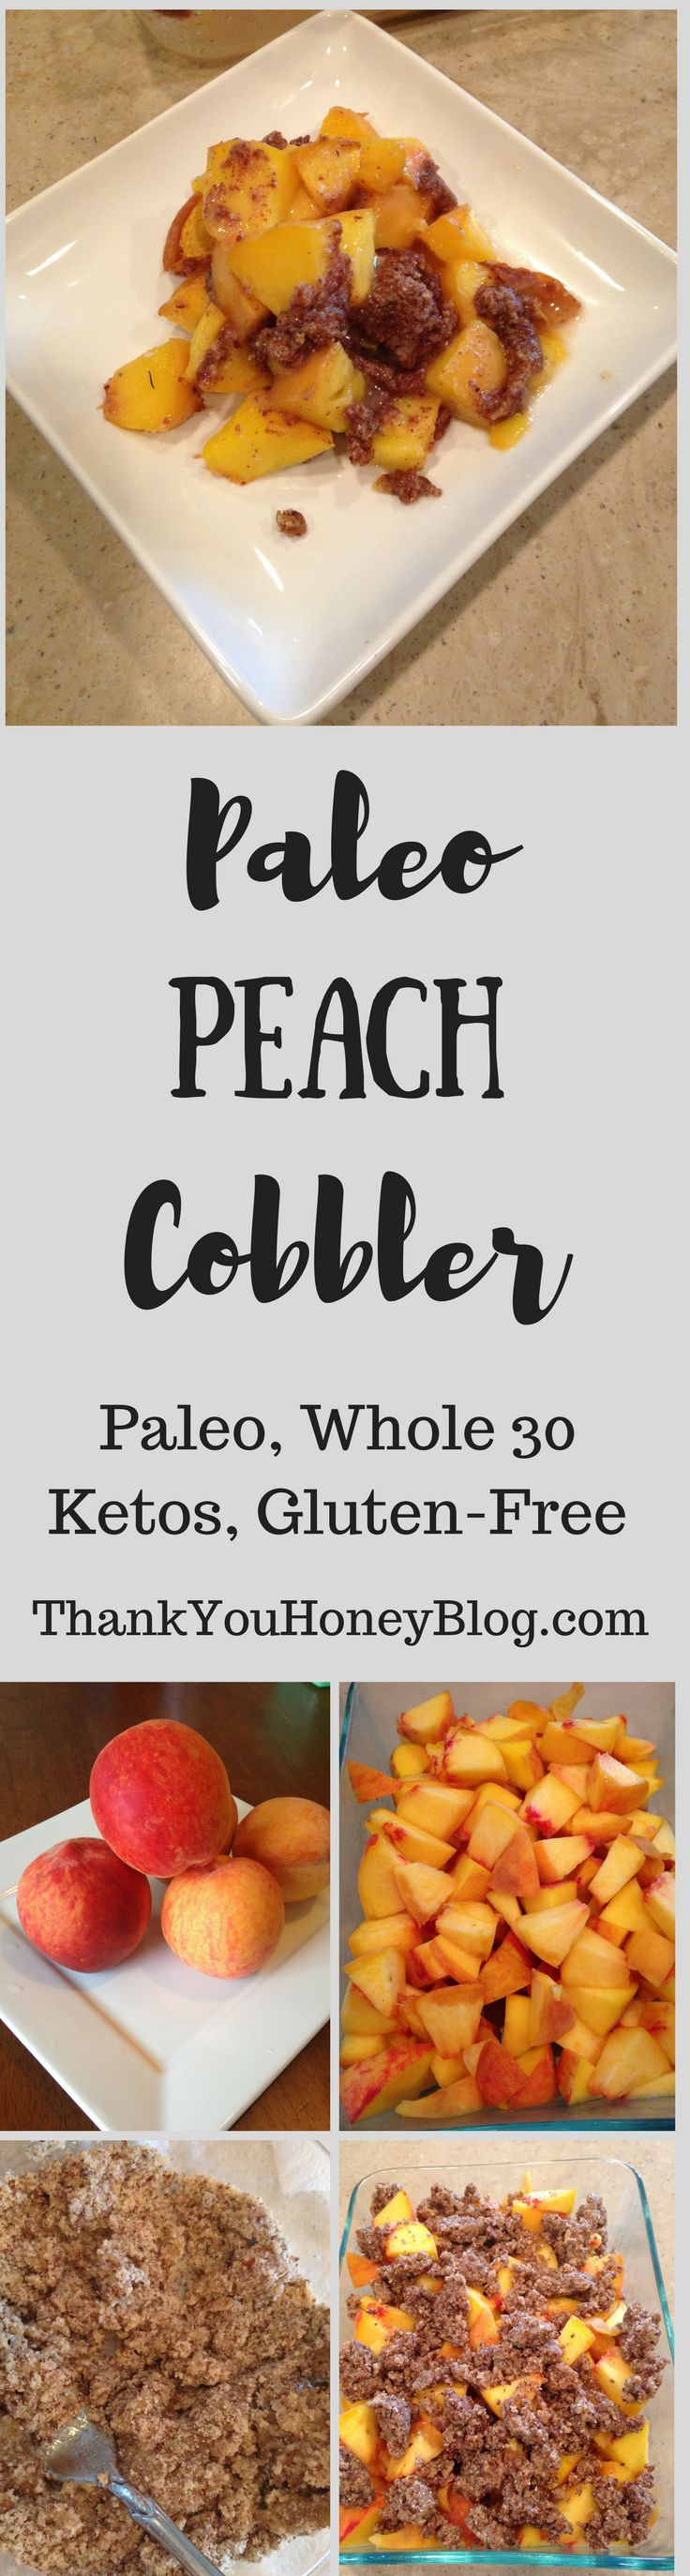 Easy Clean Eating Paleo Peach Cobbler Recipe. It's Paleo, Whole30, Gluten-Free, Keto, and more! Click through & PIN IT! Follow Us on Pinterest + Subscribe to ThankYouHoneyBlog{dot}com,  Peach Cobbler, Peaches, Clean Eating, Paleo Desserts, Paleo, Dessert, Healthy Recipes, Paleo Recipes, Peach Cobbler, Recipe, Simple Recipe, Tutorial, How to, Whole30, Gluten Free, Low Fat, Low Carb, Ketos